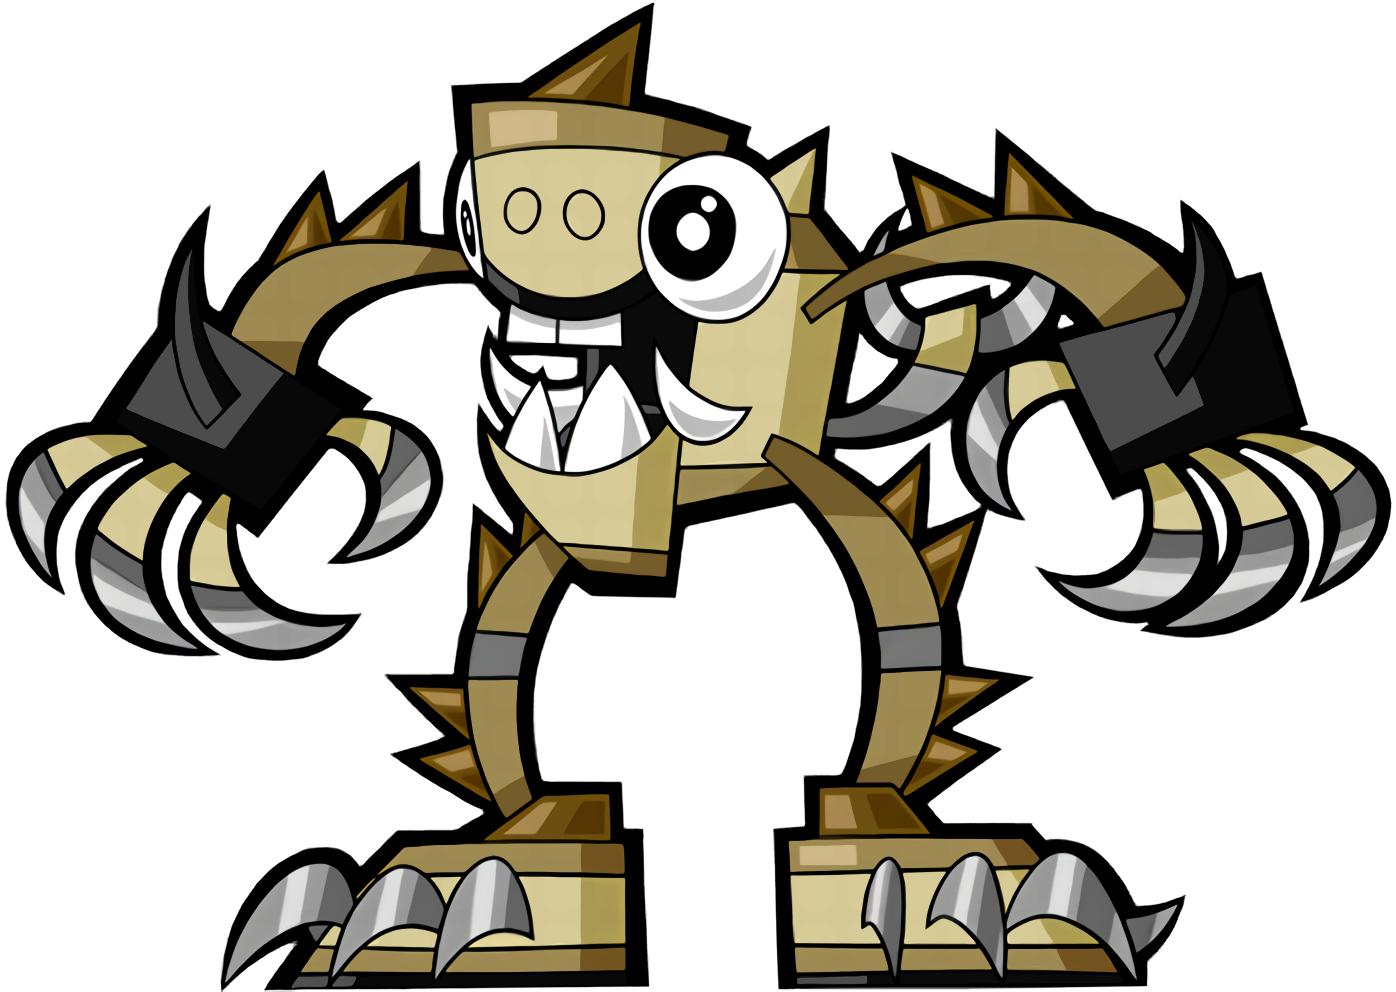 Arquivo:Spikels Max without background.PNG